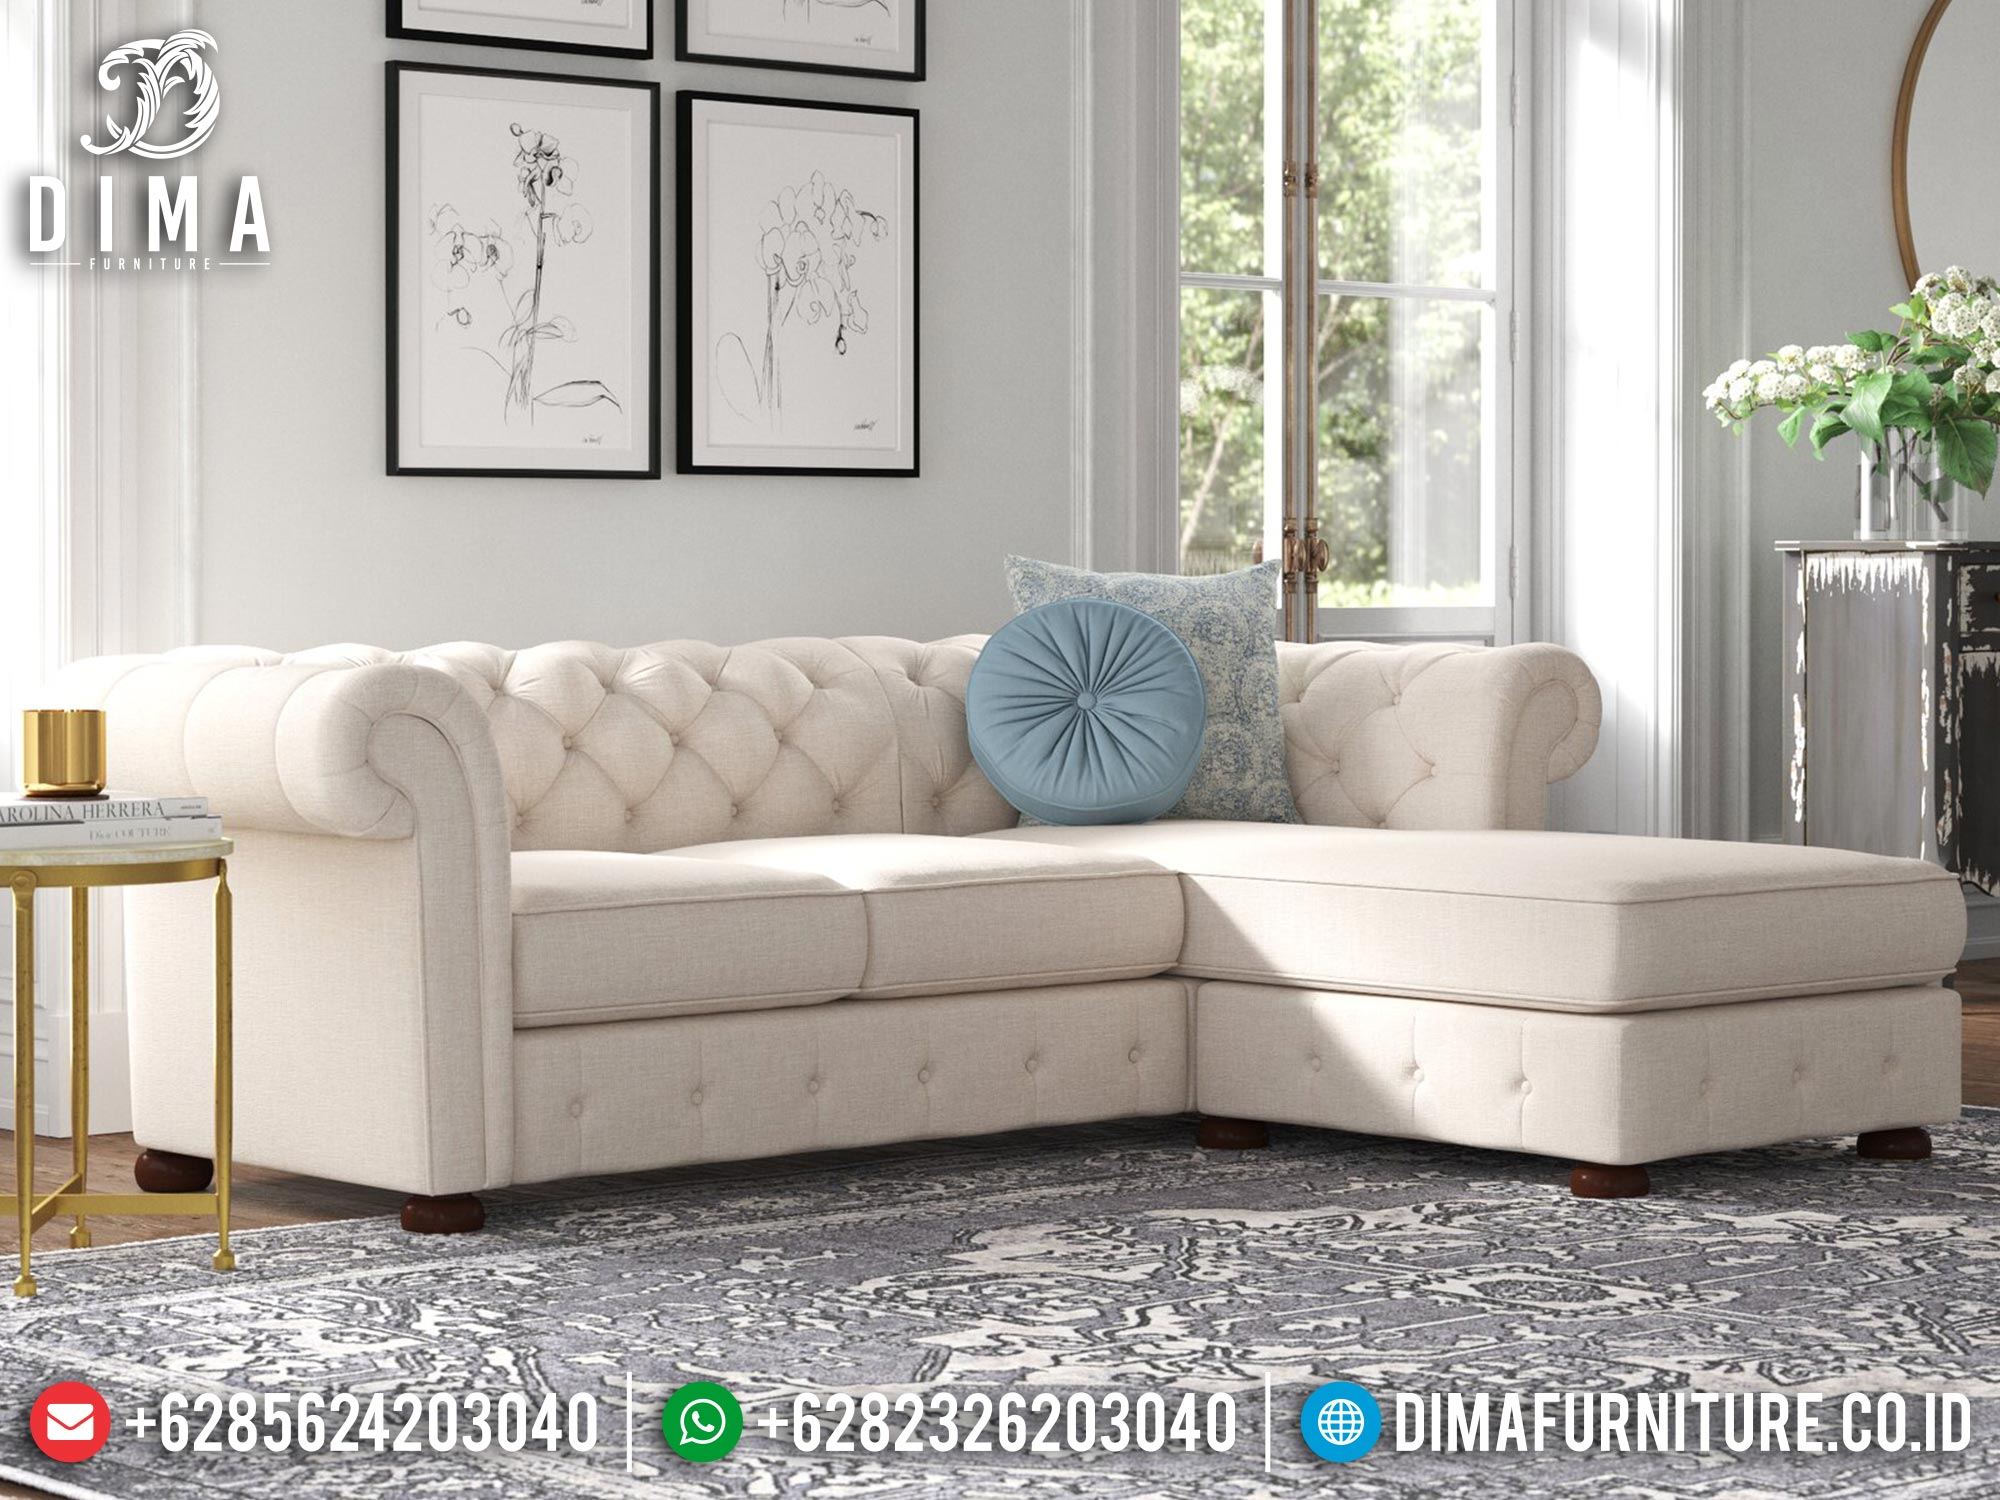 Sofa Tamu Sudut Minimalis Jepara Elegant White Fabric Color Luxury Jepara MM-1096